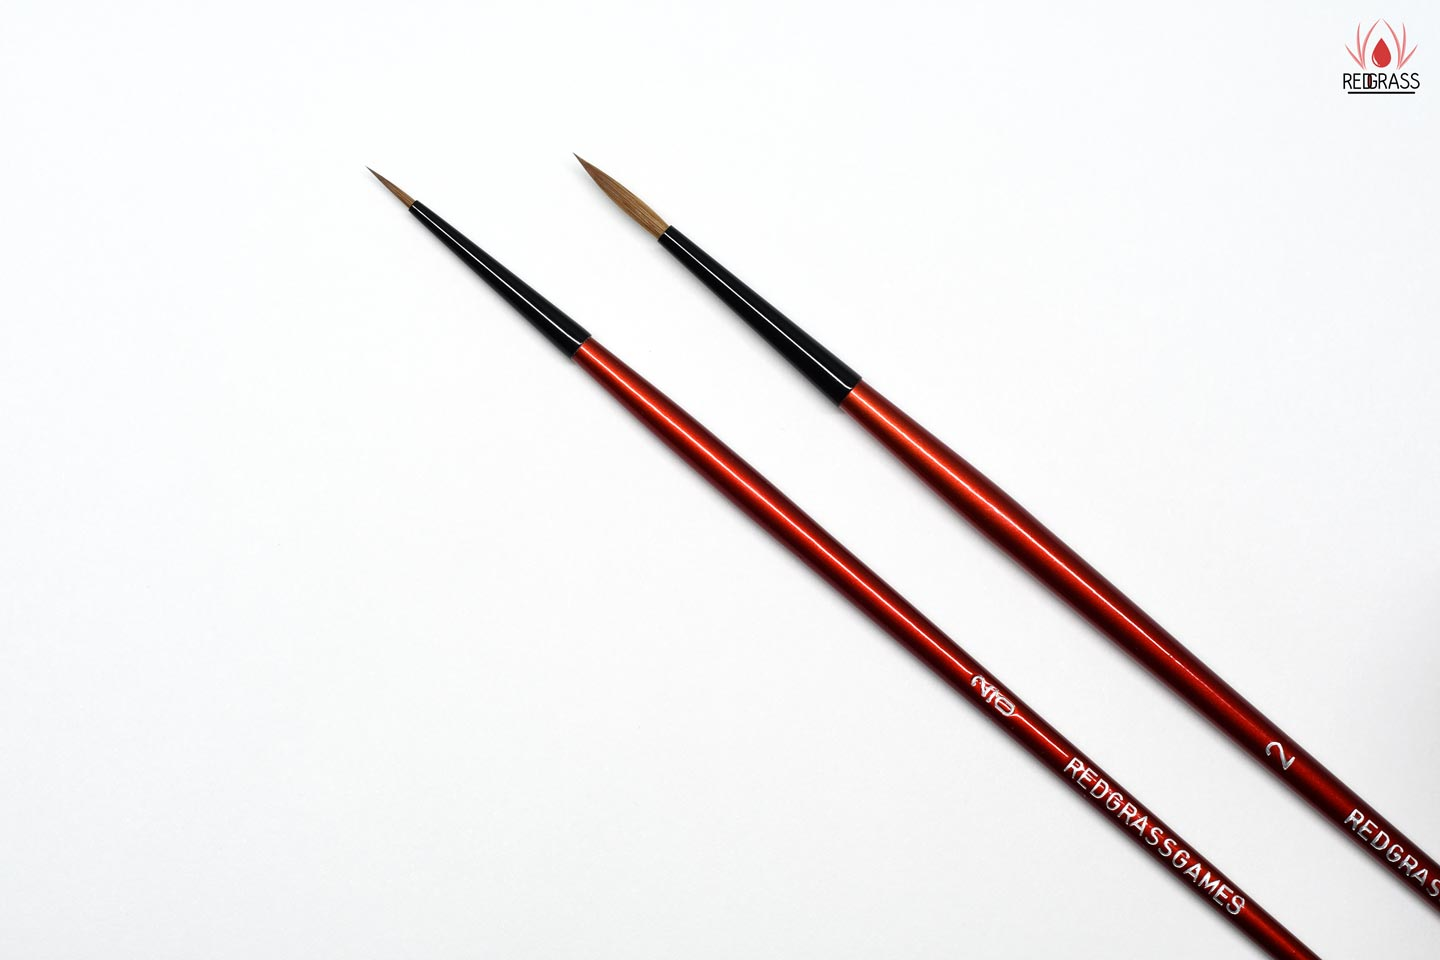 Main brush and high detail brush from Redgrassgames for miniature painting